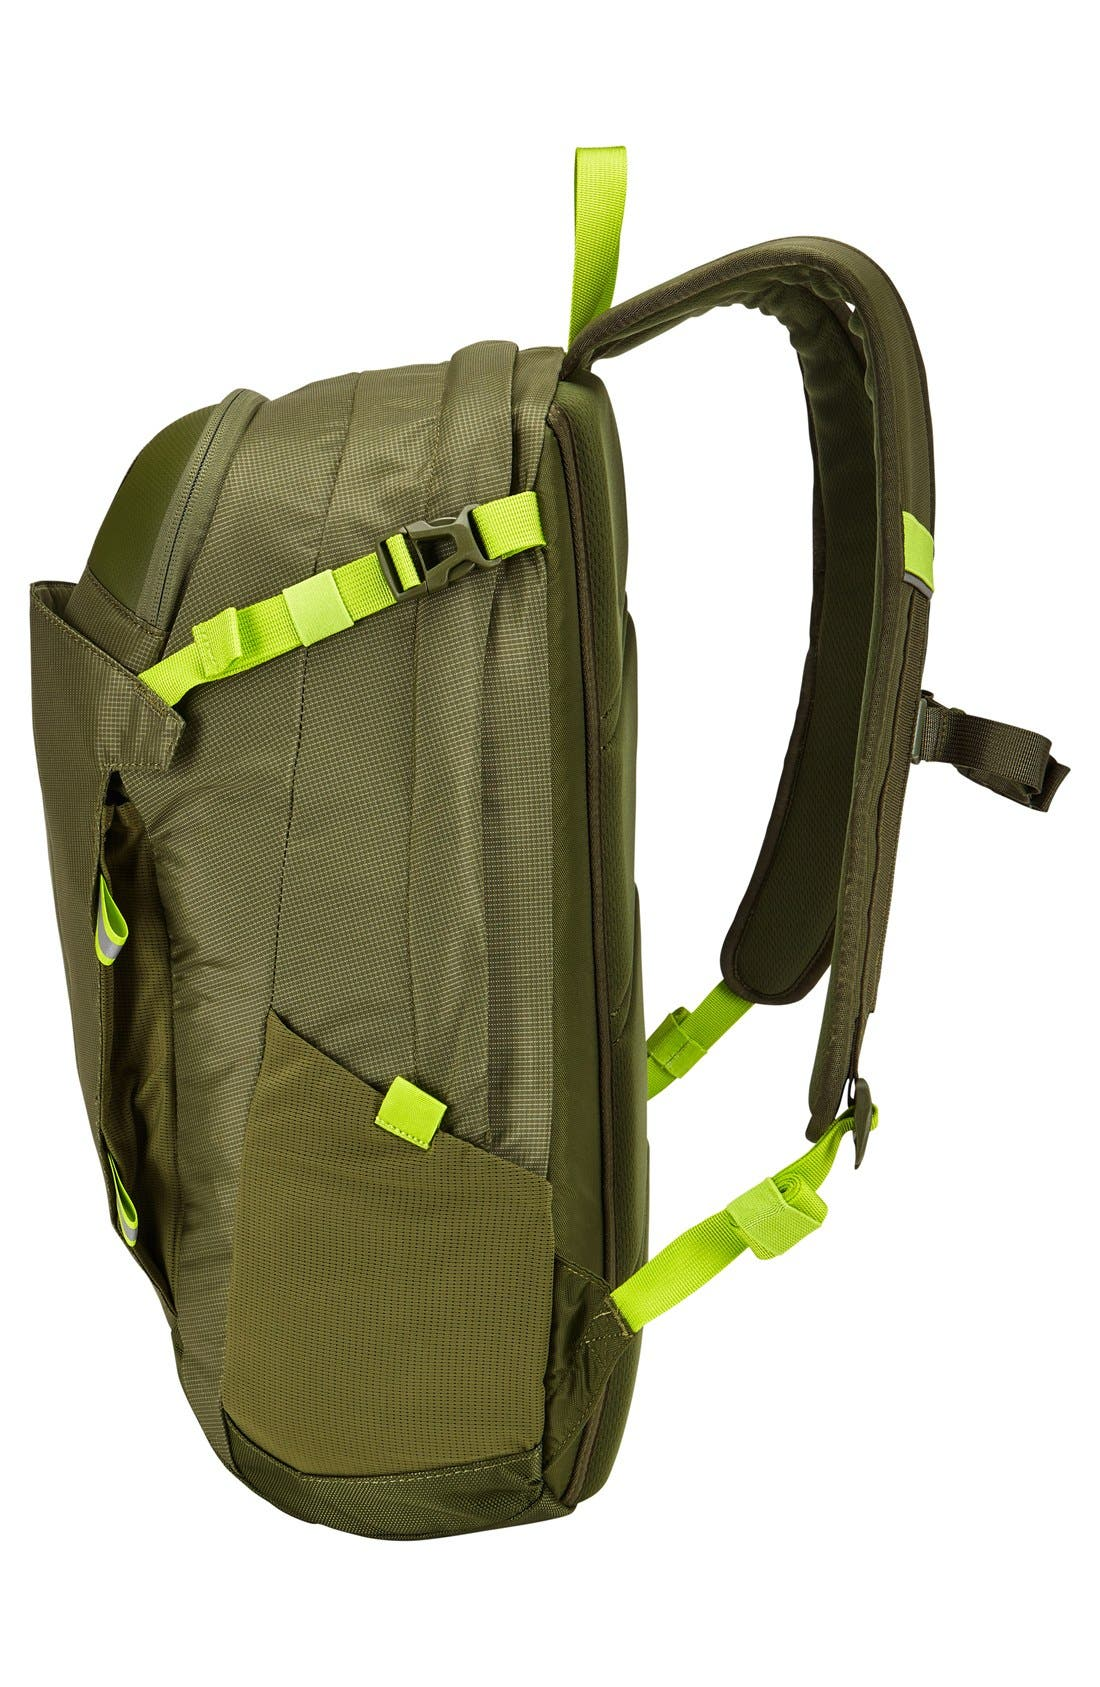 EnRoute Triumph 21-Liter Backpack,                             Alternate thumbnail 3, color,                             340